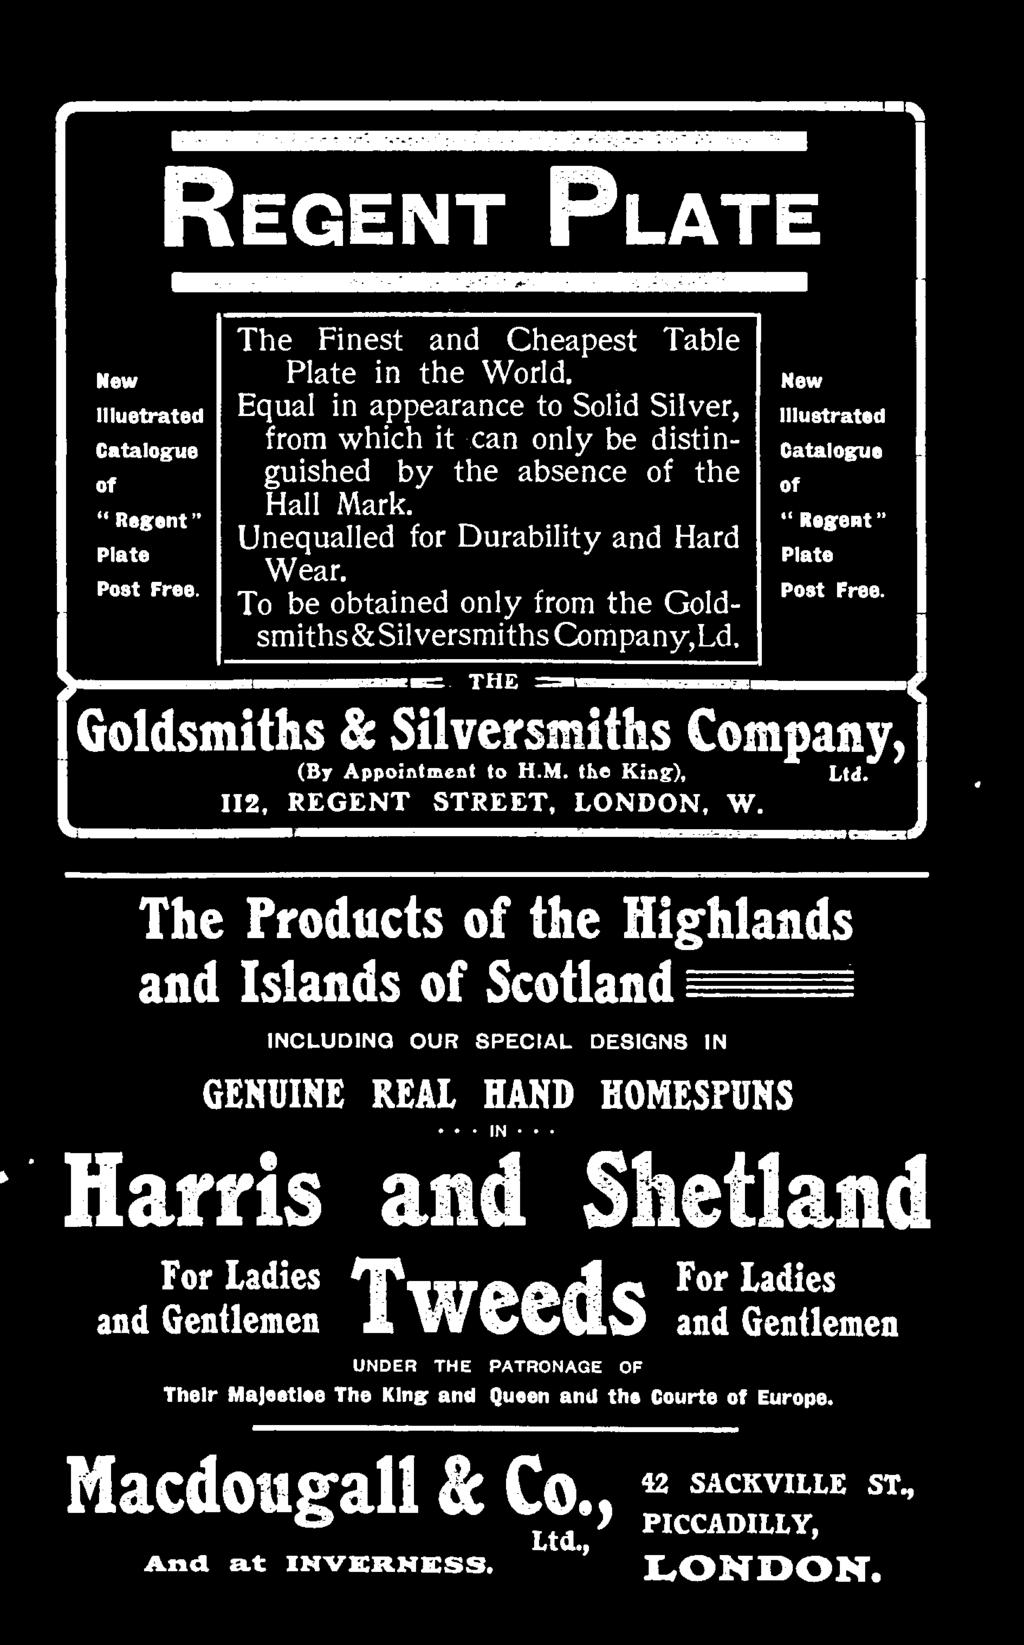 I THE - j Goldsmiths (By & Appointment Silversmiths to H.M. the King), Company, Ltd. 112, REGENT STREET, LONDON, W.